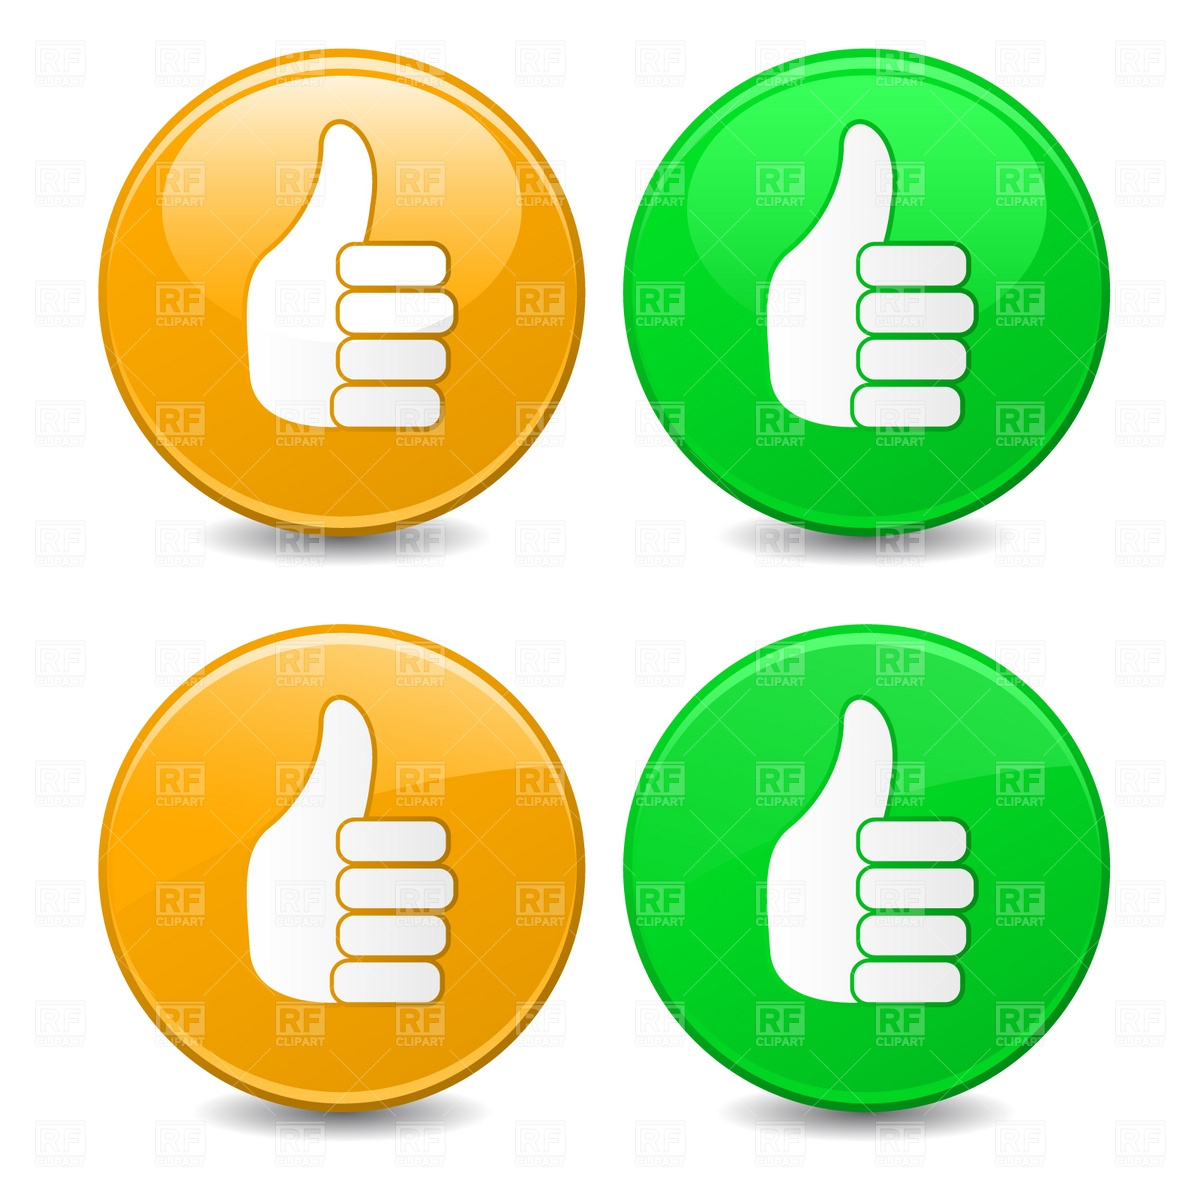 Free clipart thumbs up sign transparent stock Free clipart thumbs up sign - ClipartFest transparent stock